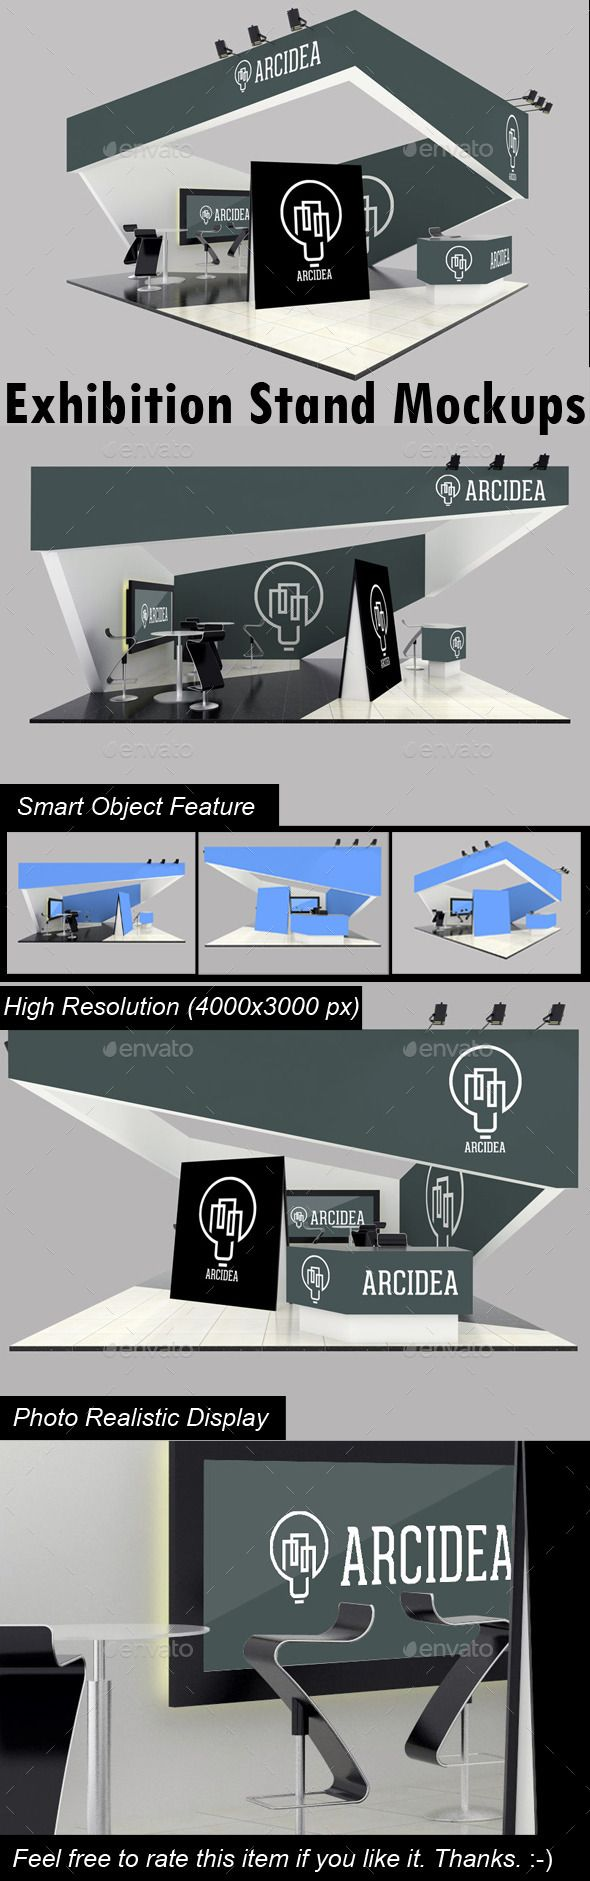 Pop Up Exhibition Stand Mockup Free : Best images about mockups exhibitions on pinterest